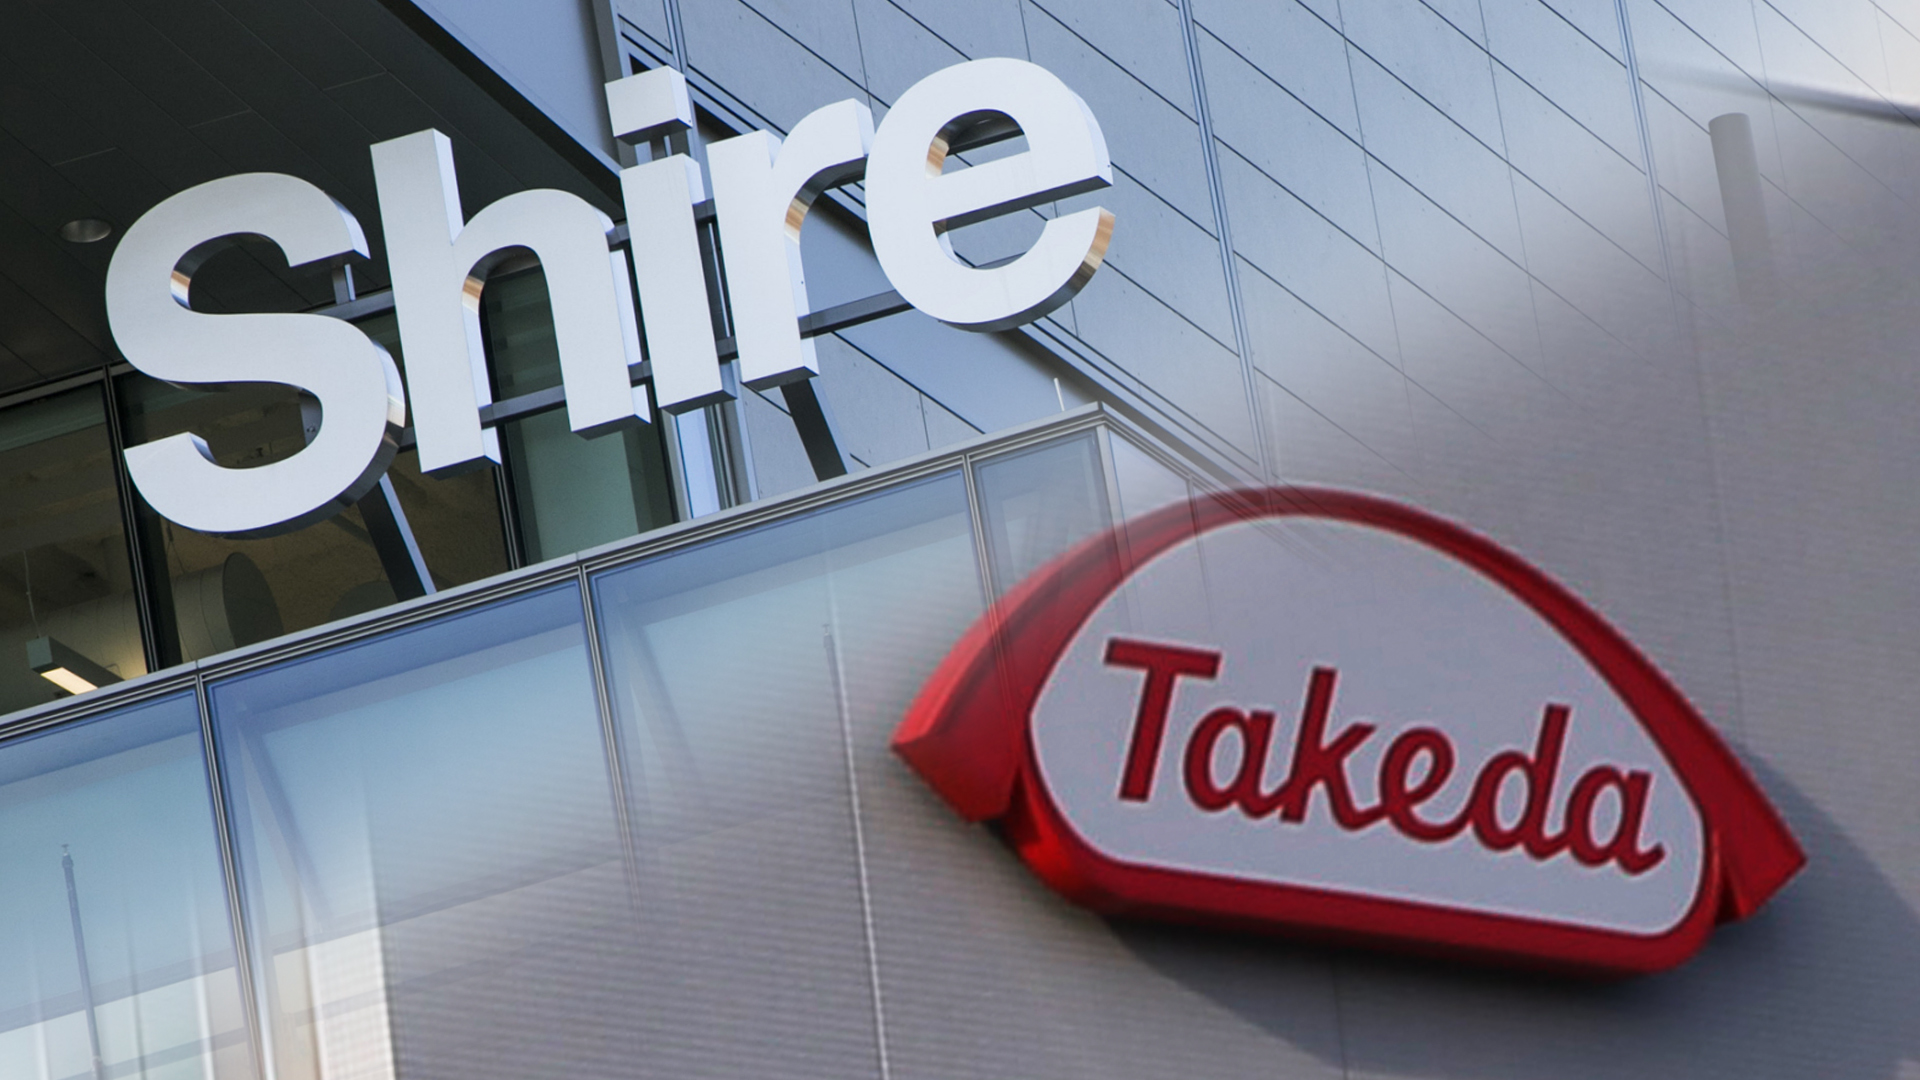 European Commission Waives the Takeda's Commitment to Obtain Clearance on Shire's Acquisition